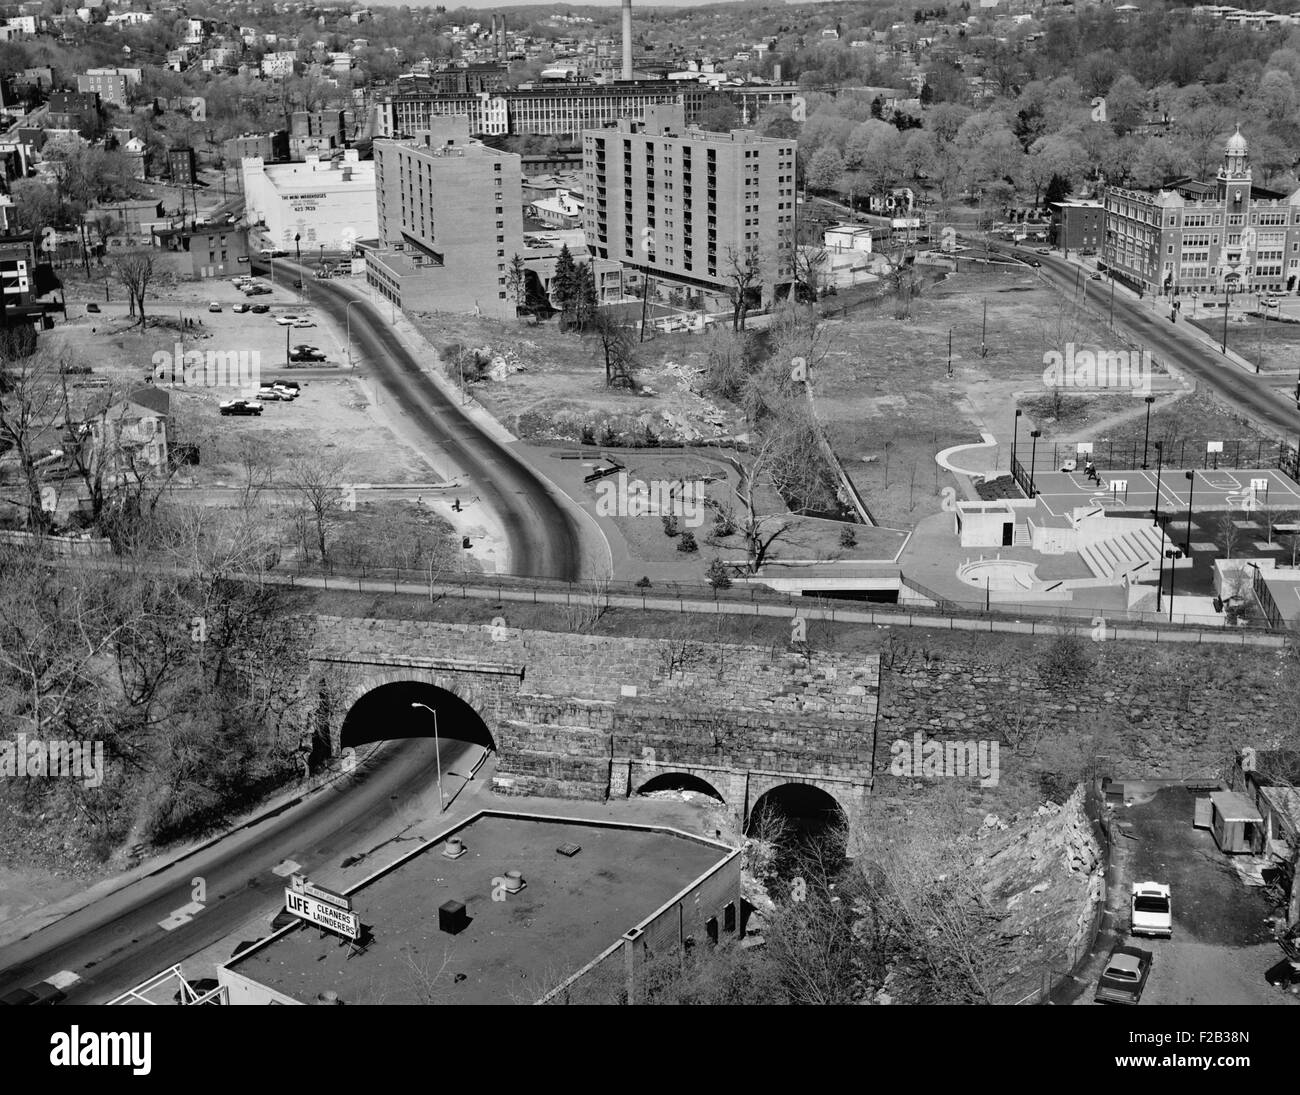 Yonkers, New York, ca. 1980. Aerial view showing Old ...